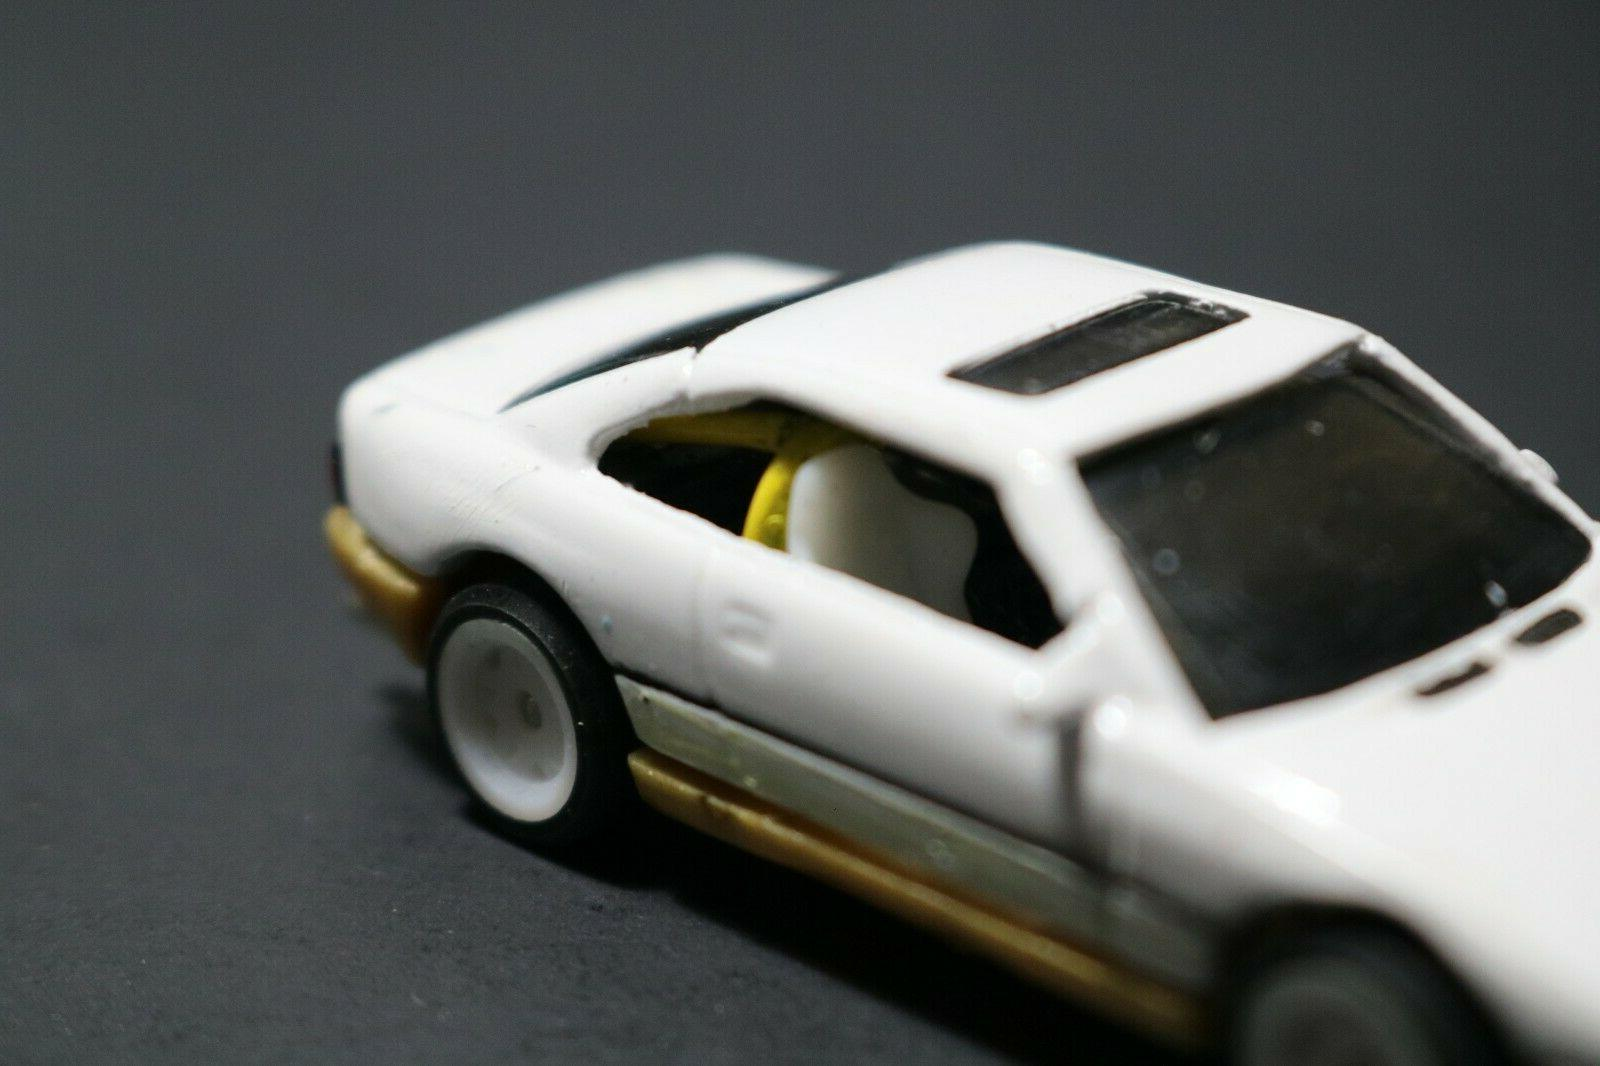 1/64 seat | 1/64 two seats or white